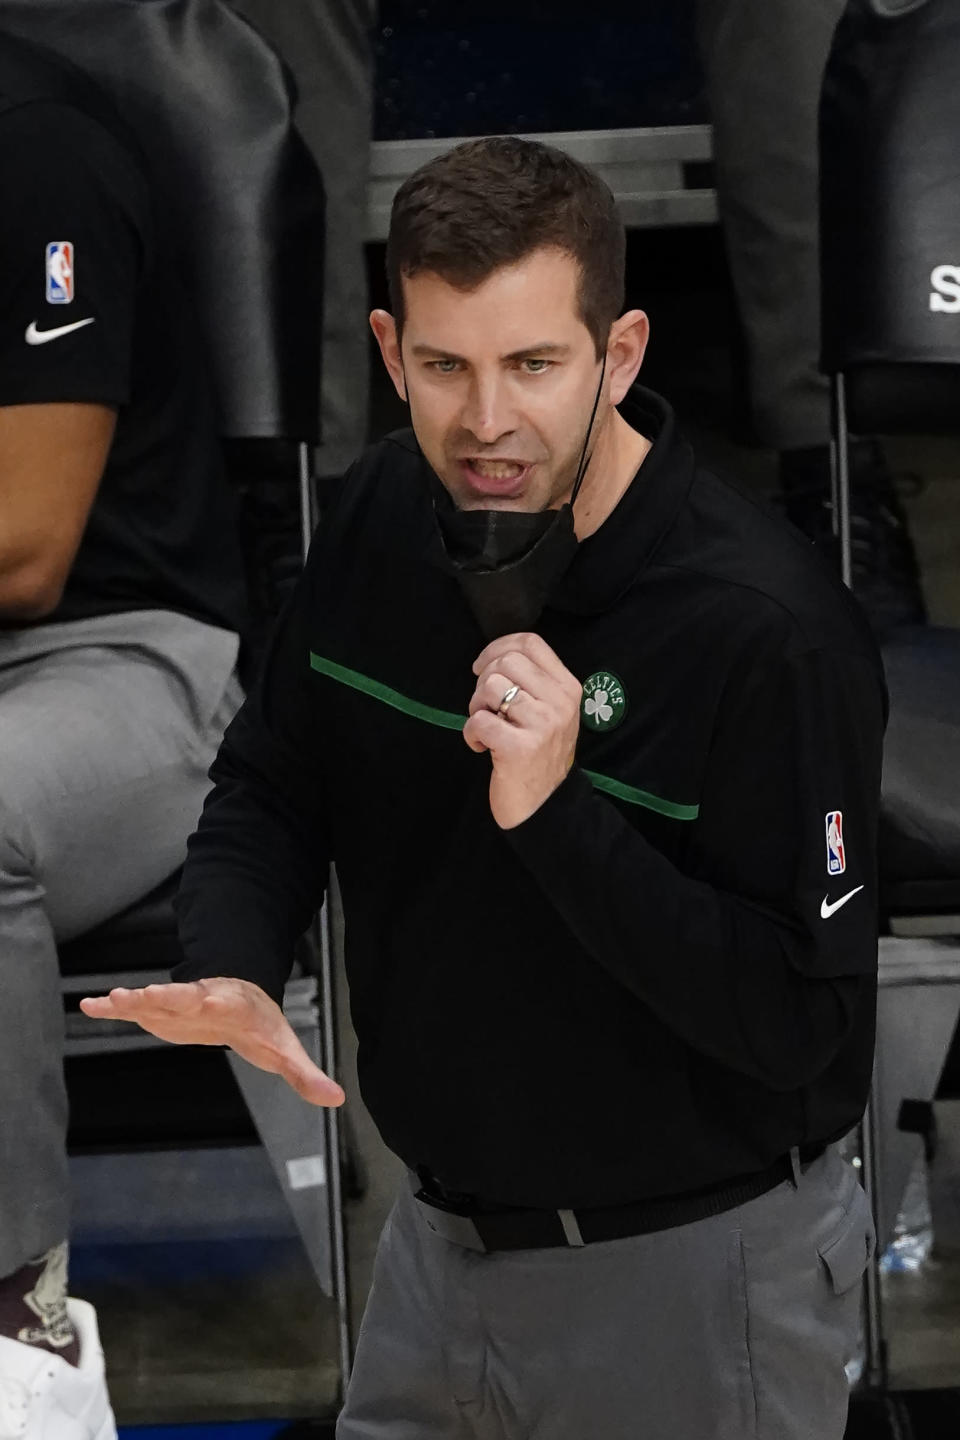 Boston Celtics head coach Brad Stevens talks to his players on the court in the second half of an NBA basketball game against the Atlanta Hawks Wednesday, Feb. 24, 2021, in Atlanta. (AP Photo/John Bazemore)